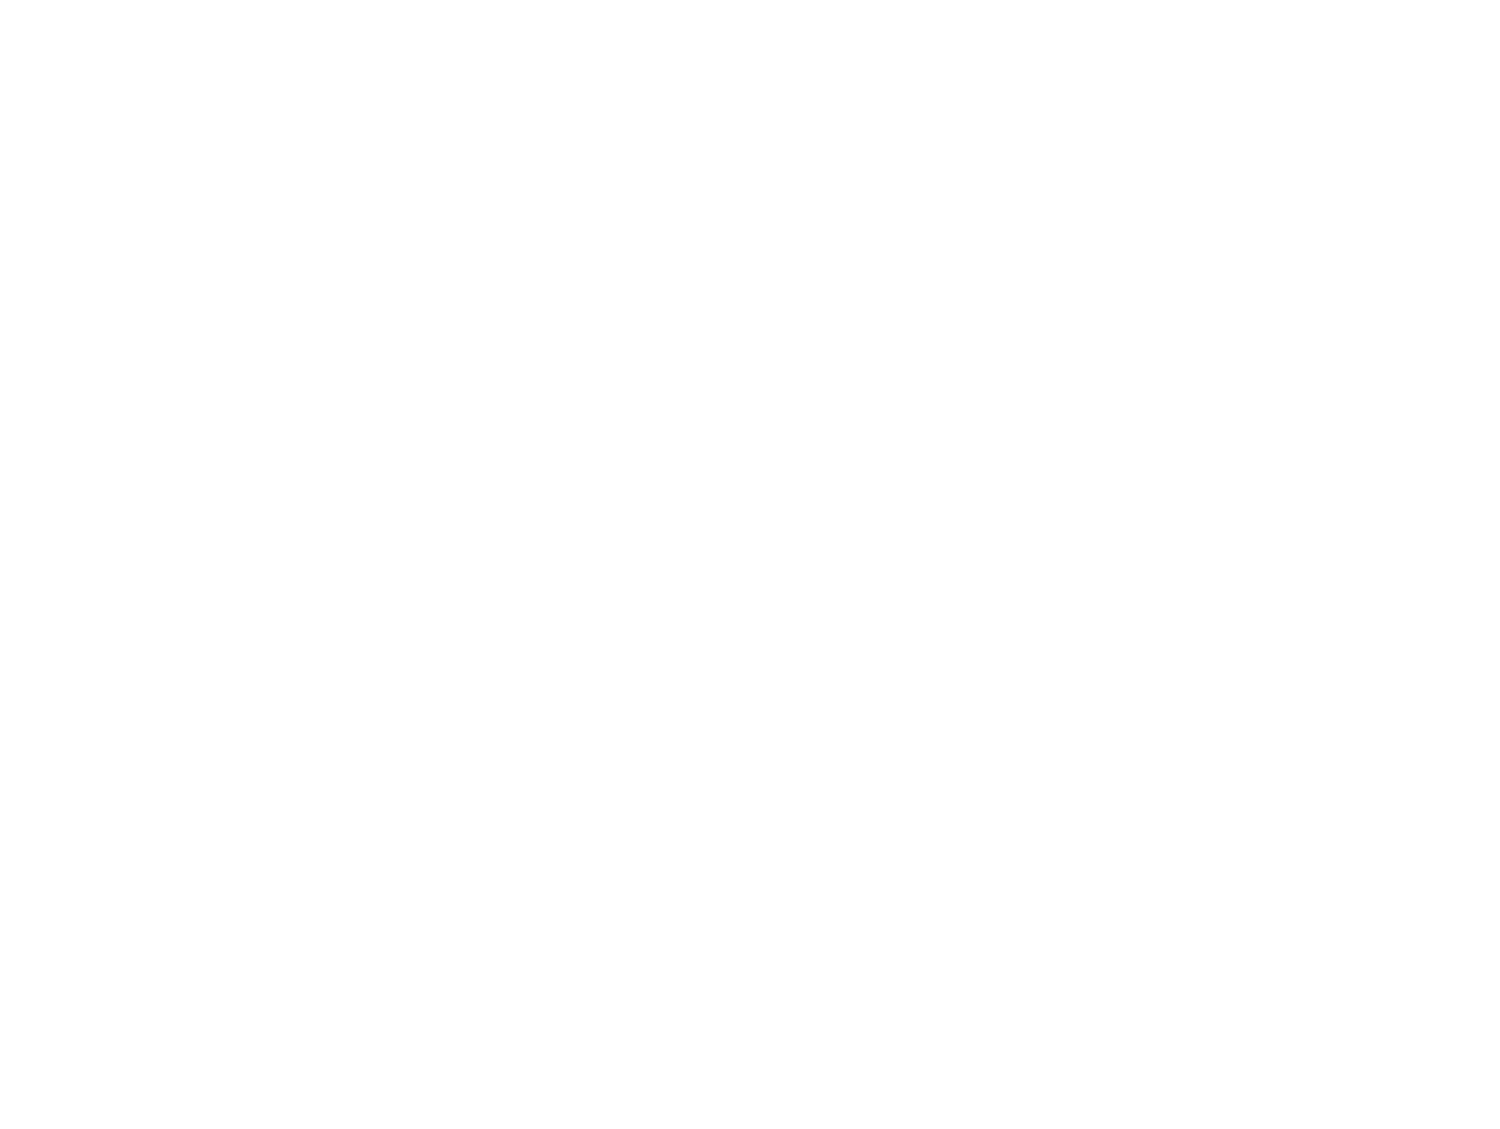 FAREGROUND COMMUNITY CAFE